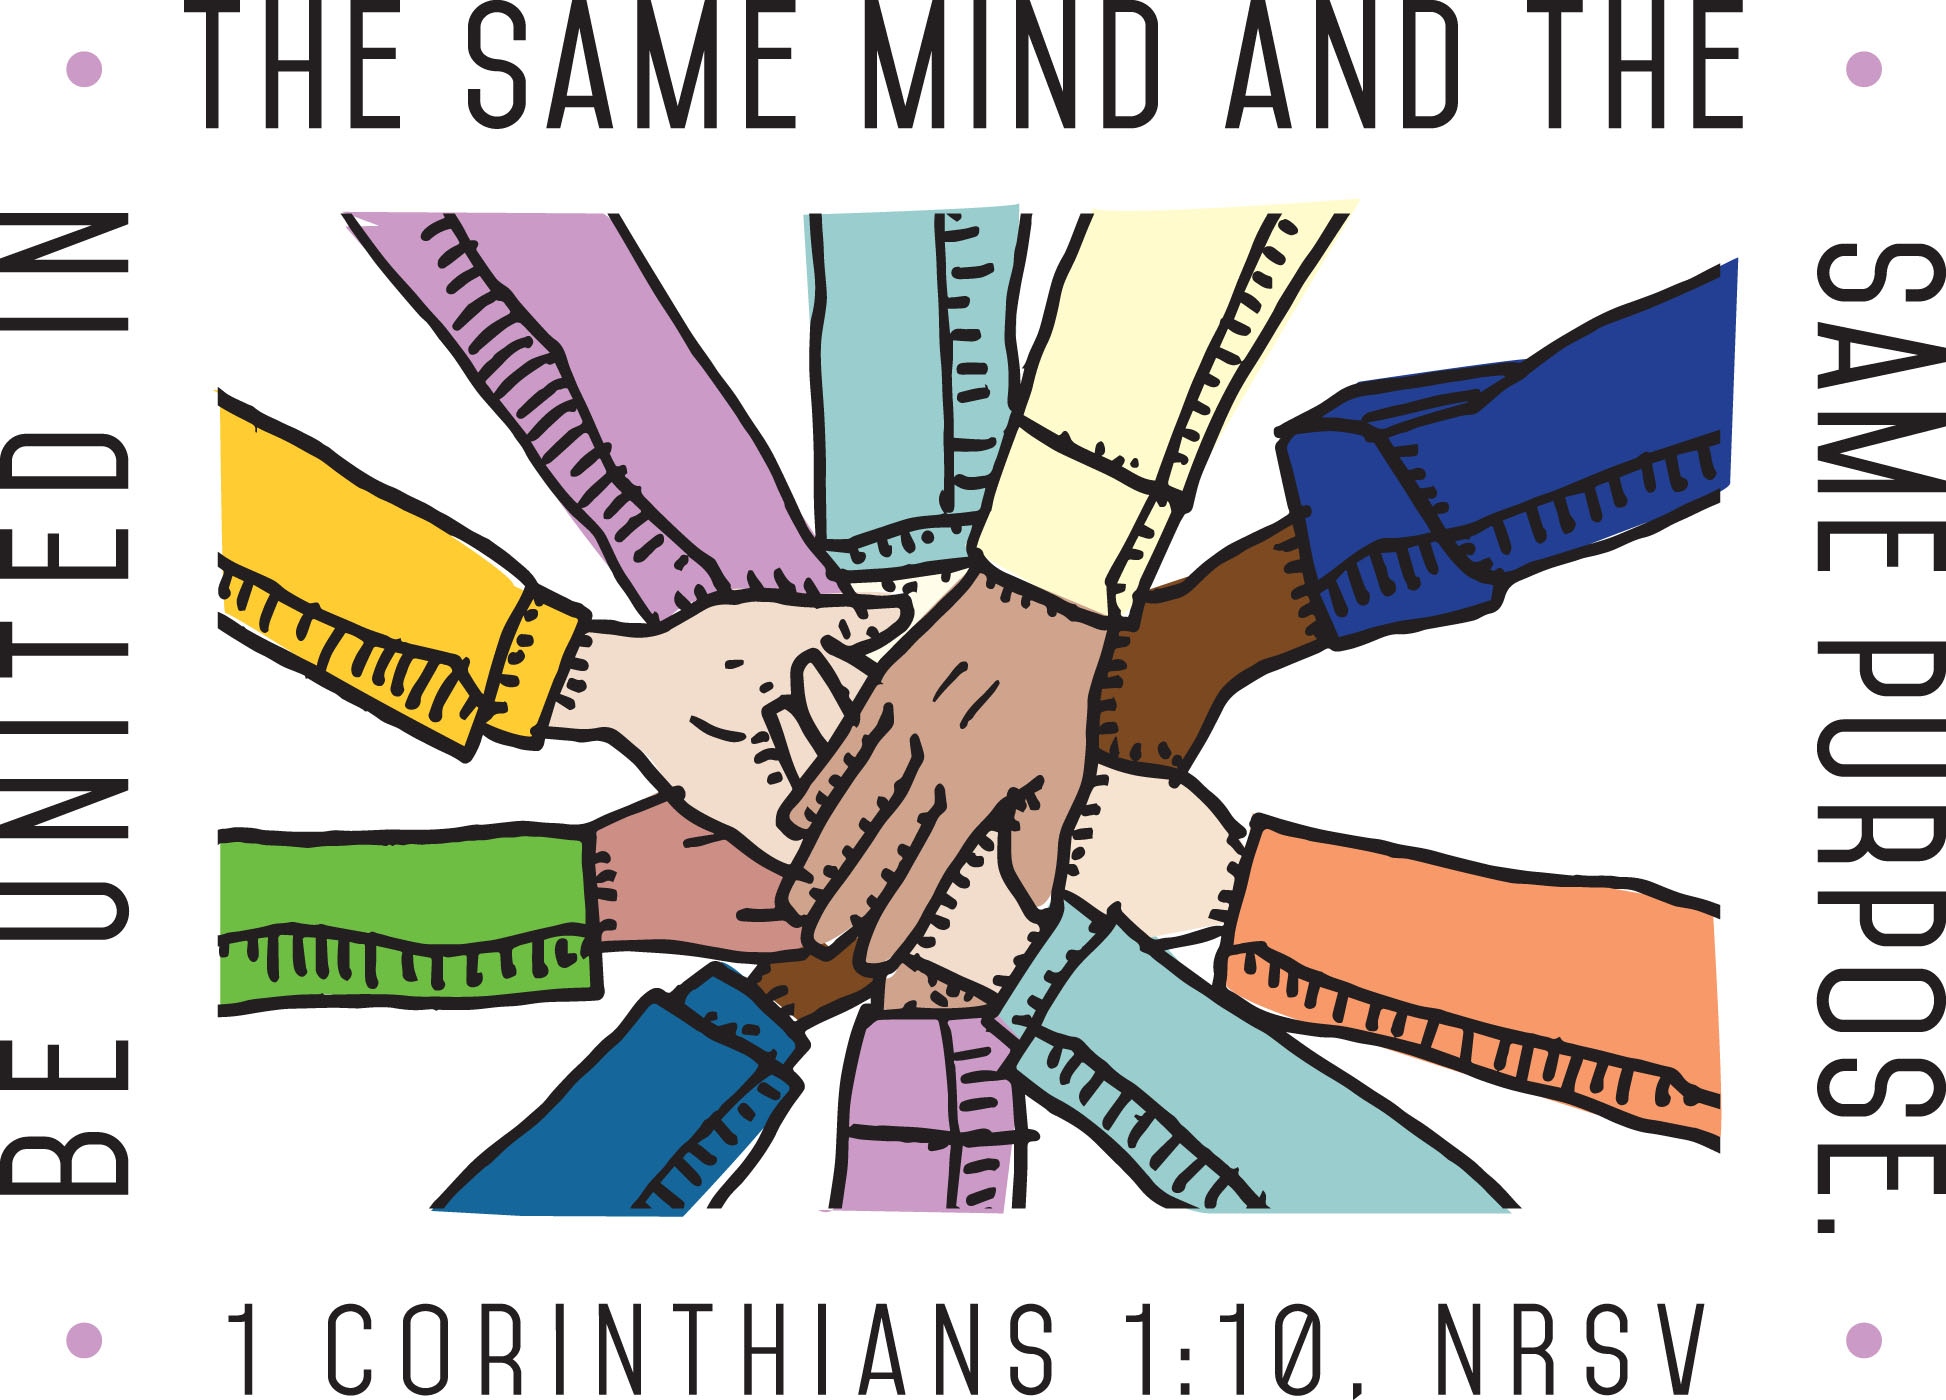 1 Corinthians: United in One Mind and Judgment